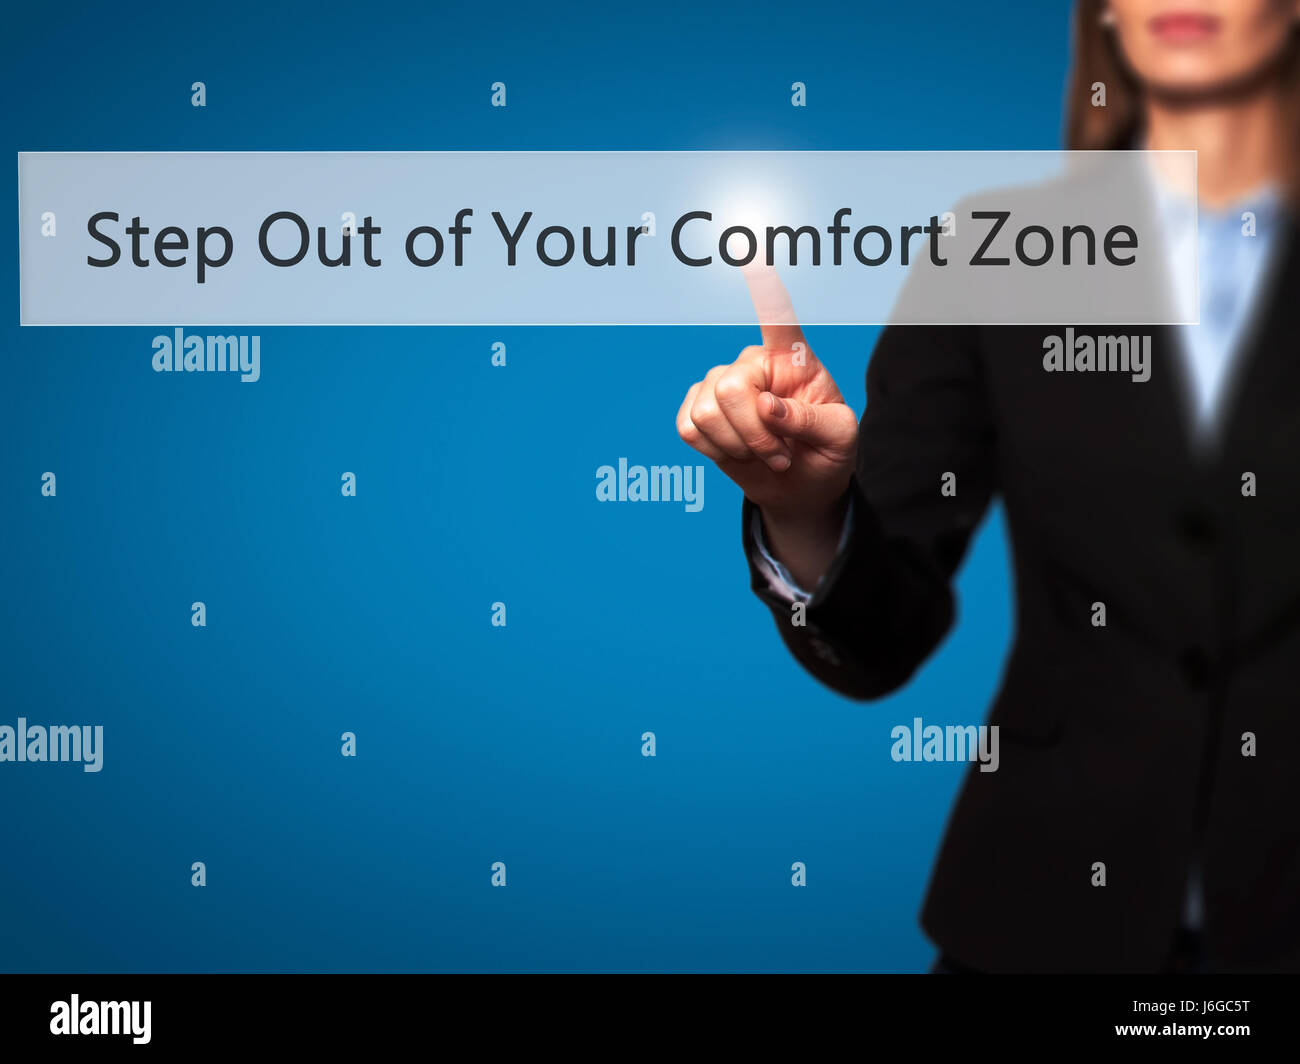 Step Out of Your Comfort Zone - Businesswoman hand pressing button on touch screen interface. Business, technology, internet concept. Stock Photo Stock Photo